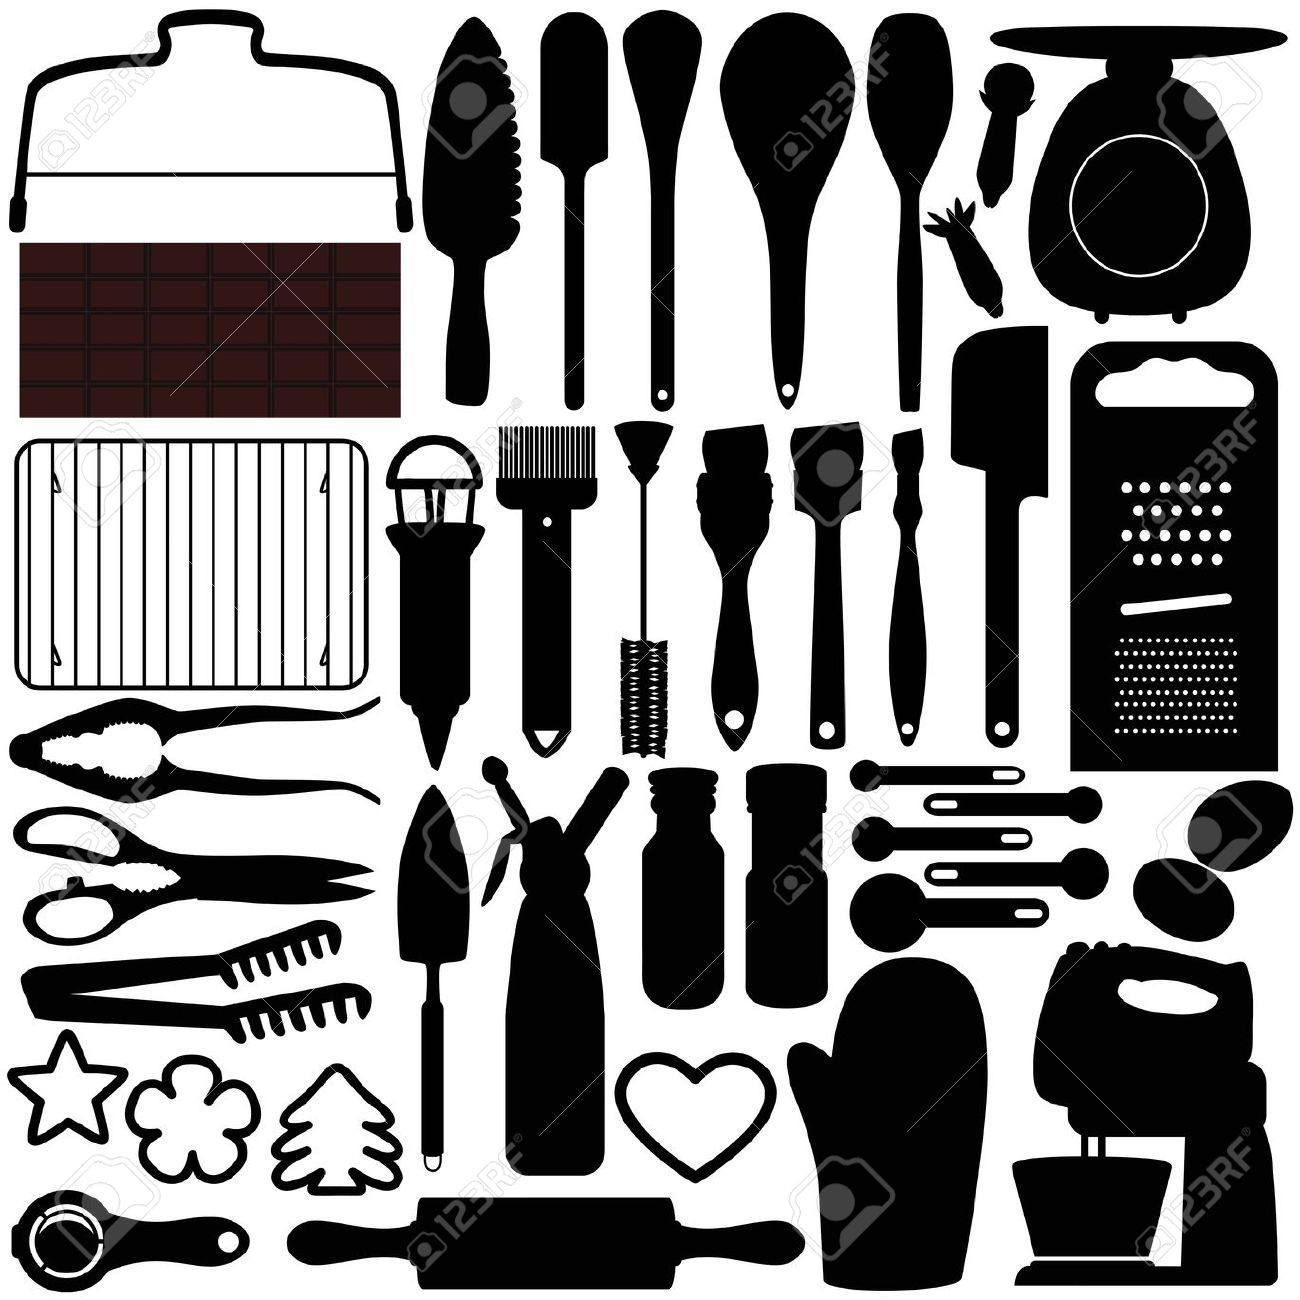 A Silhouettes Collection Of Cooking, Baking Tools Royalty Free.